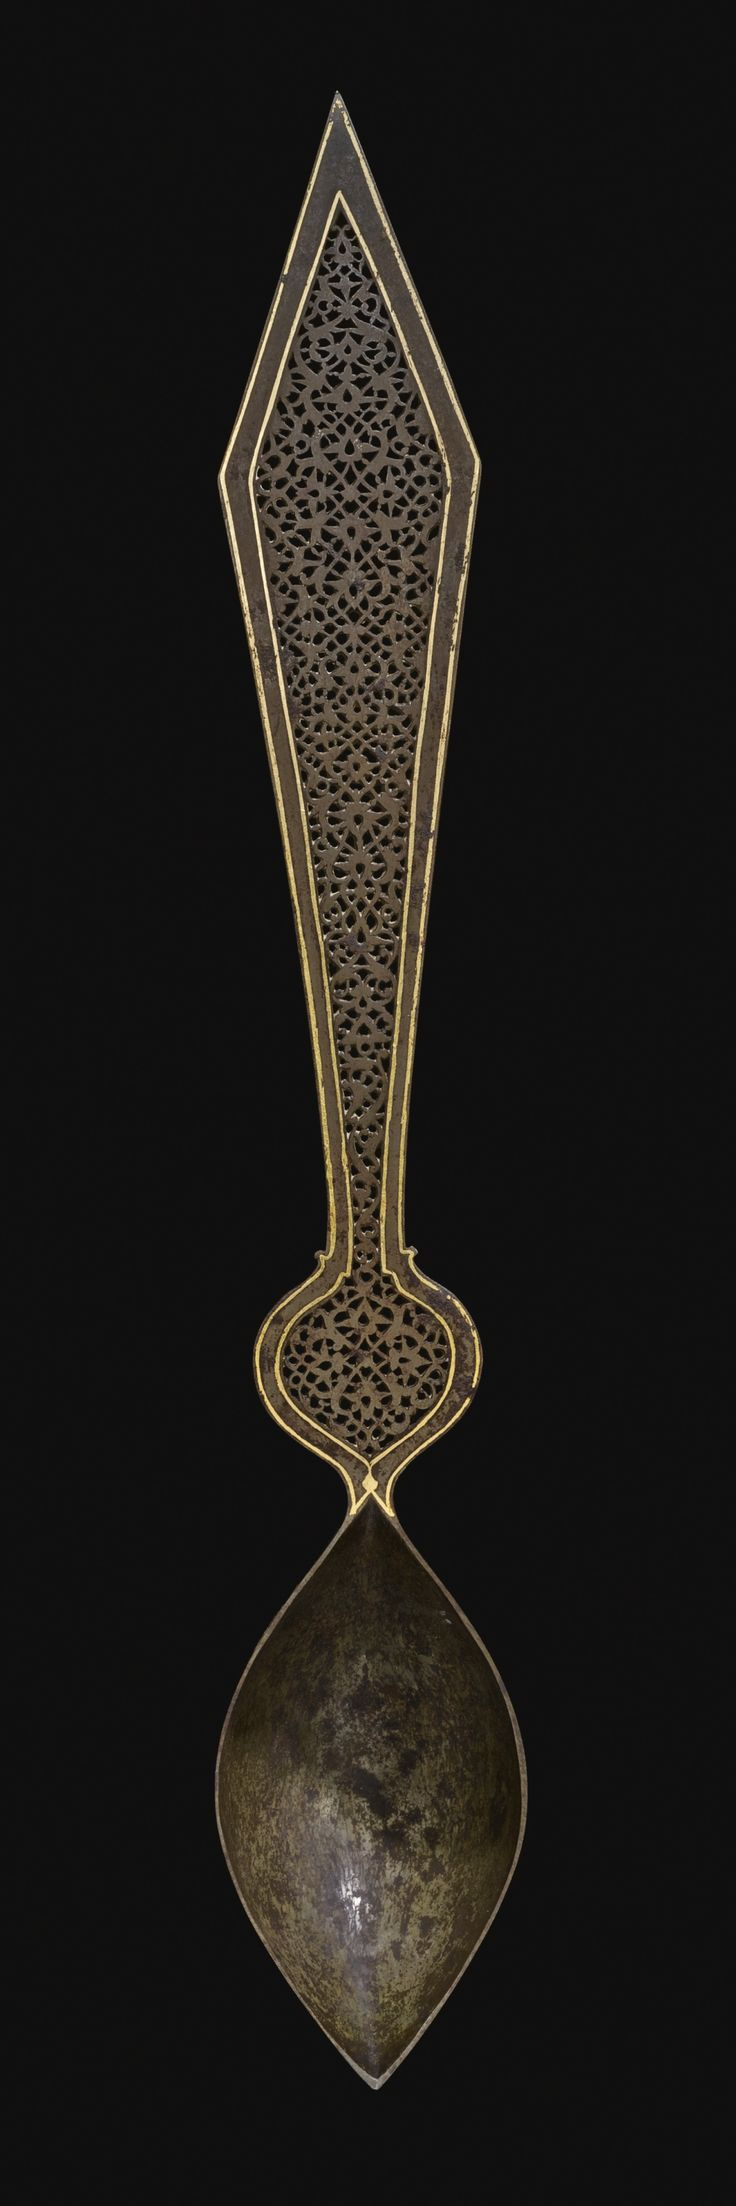 A QAJAR PIERCED AND ENGRAVED GILDED SPOON, PERSIA, 19TH CENTURY of typical form, the arm pierced and with a gilded border, the body of the spoon with detailed engraving composing foliate motifs and lobed cartouche gilding 48.5cm.